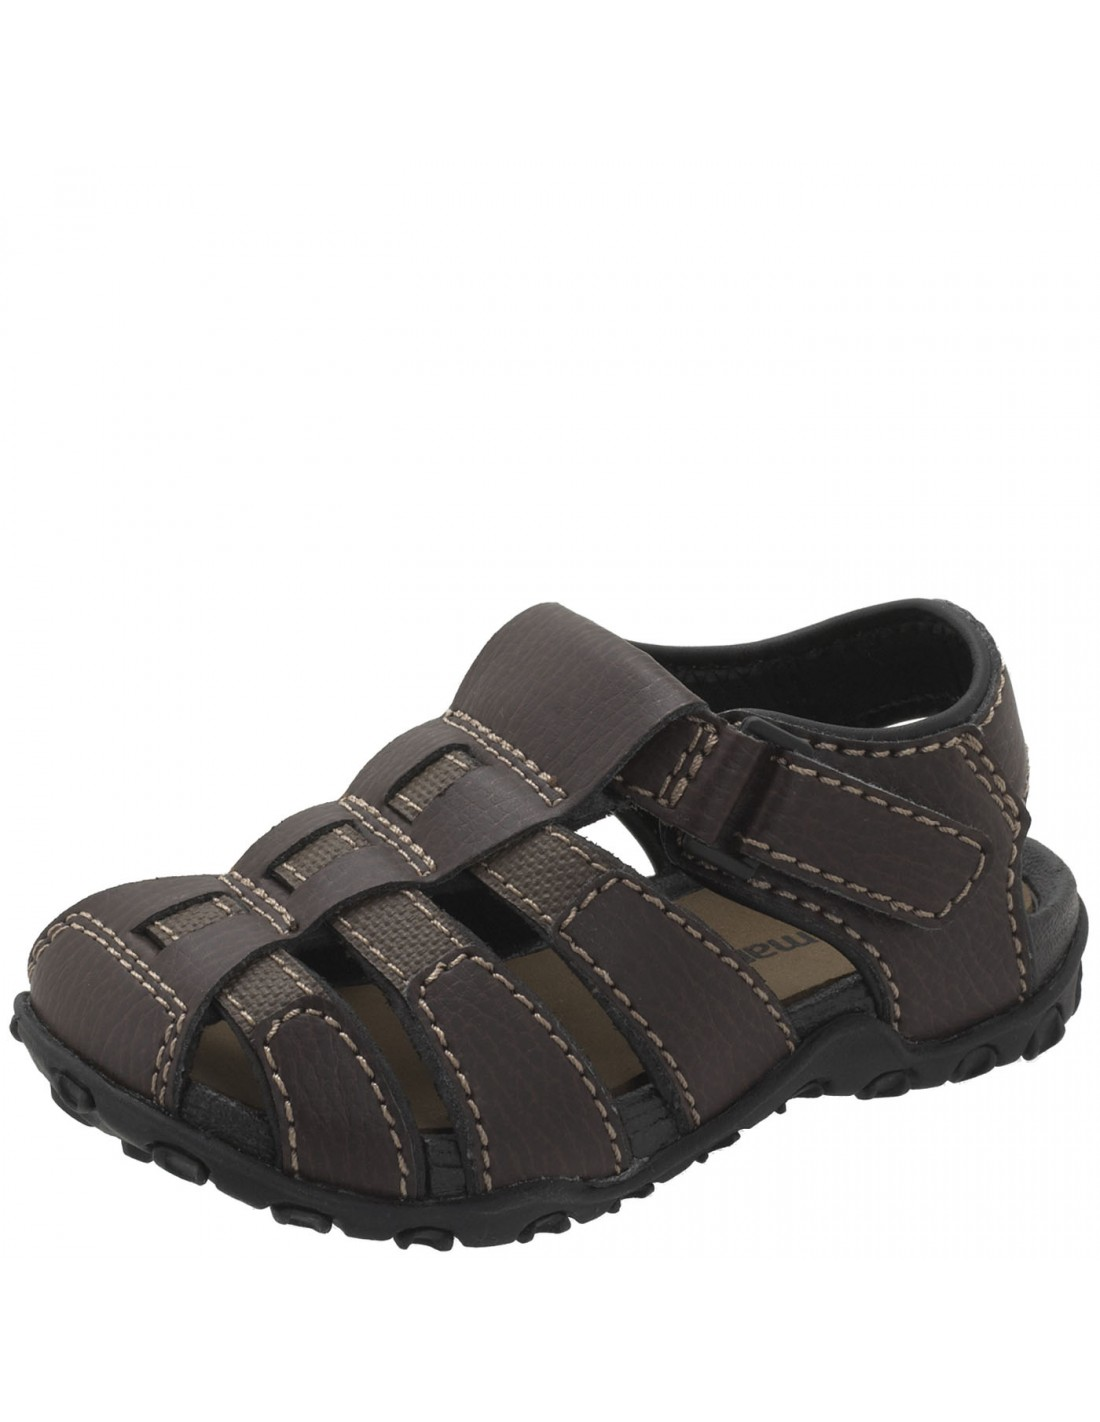 de8aa990f9839 Boys  Toddler Livingston Fisherman sandals - Brown. On sale! Previous